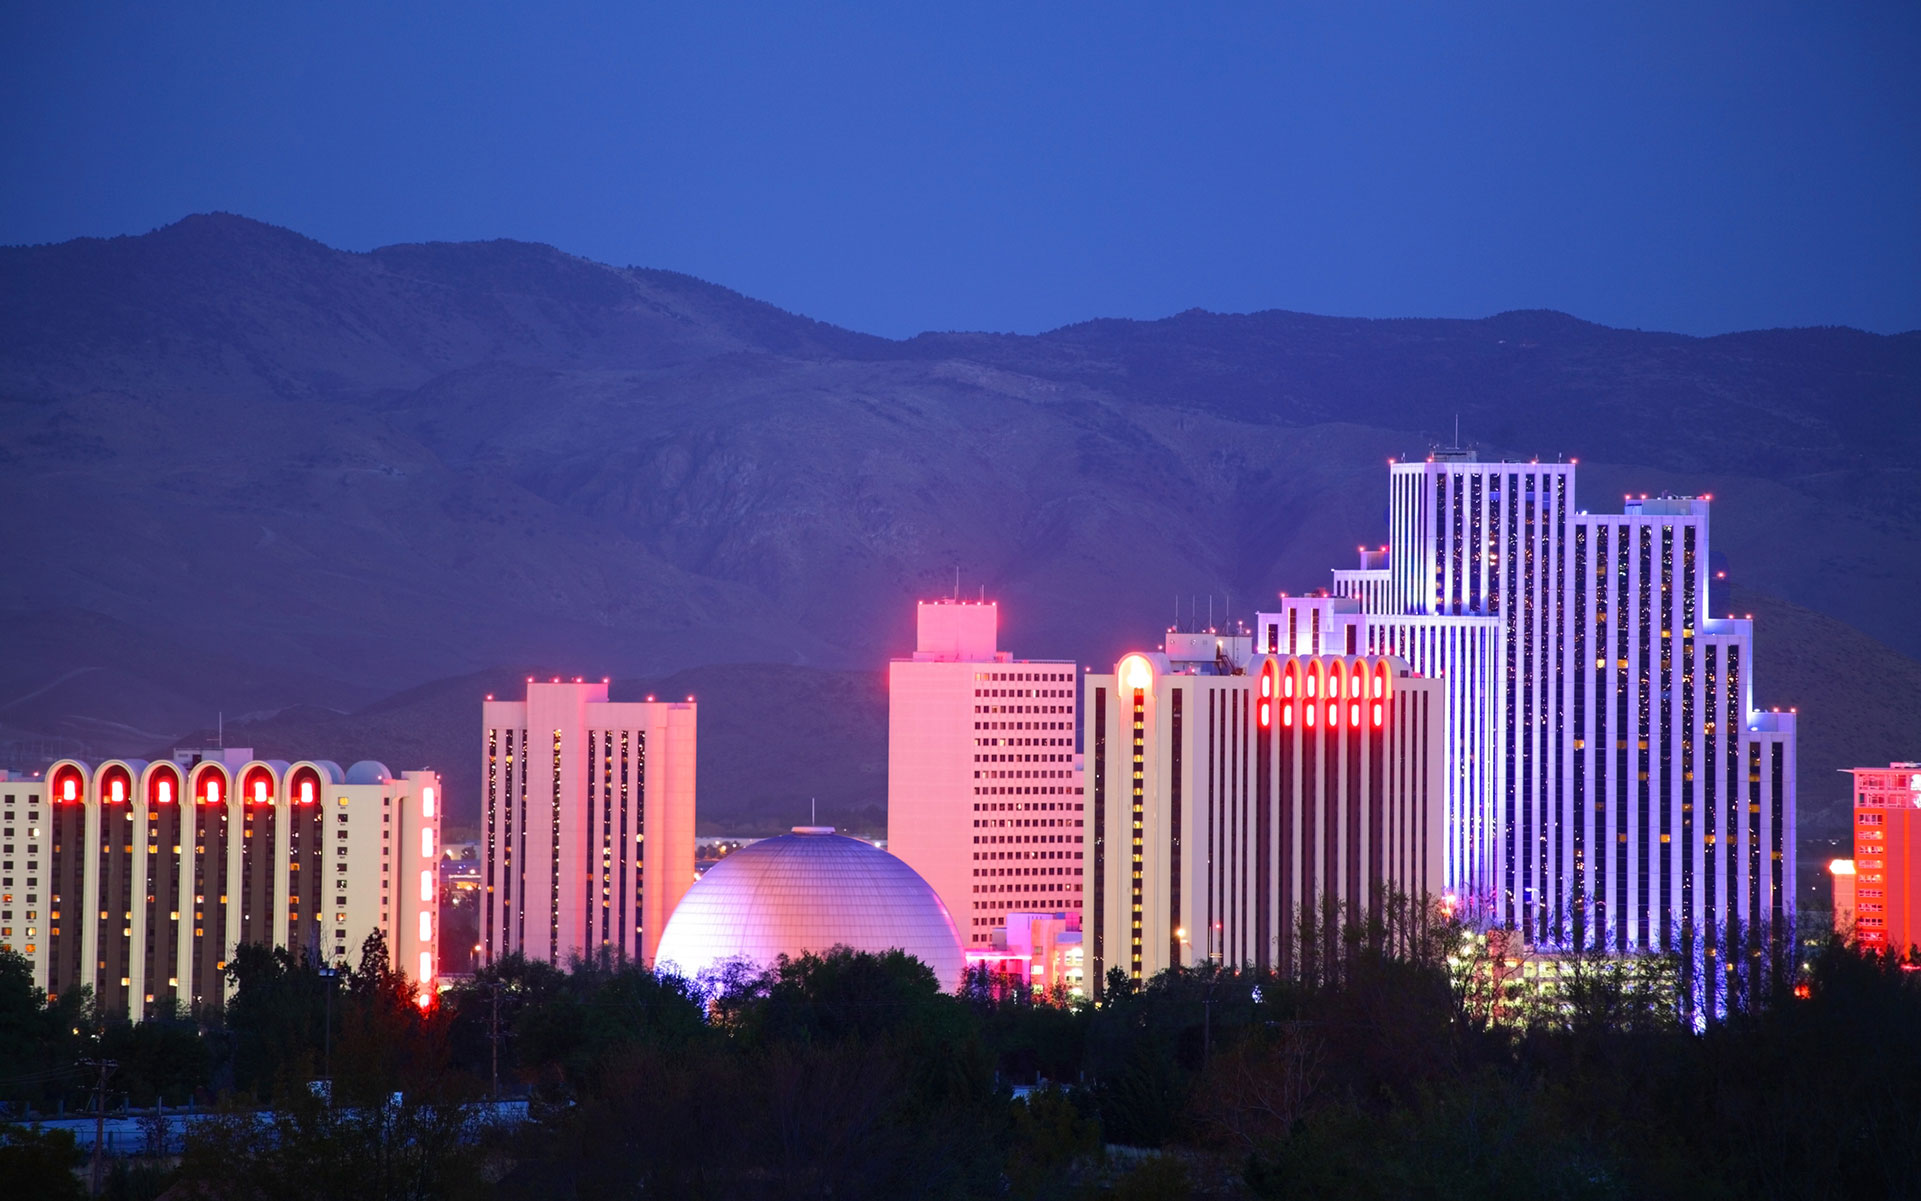 In Nevada, Legal Cannabis Added $1 Billion Impact to State Economy